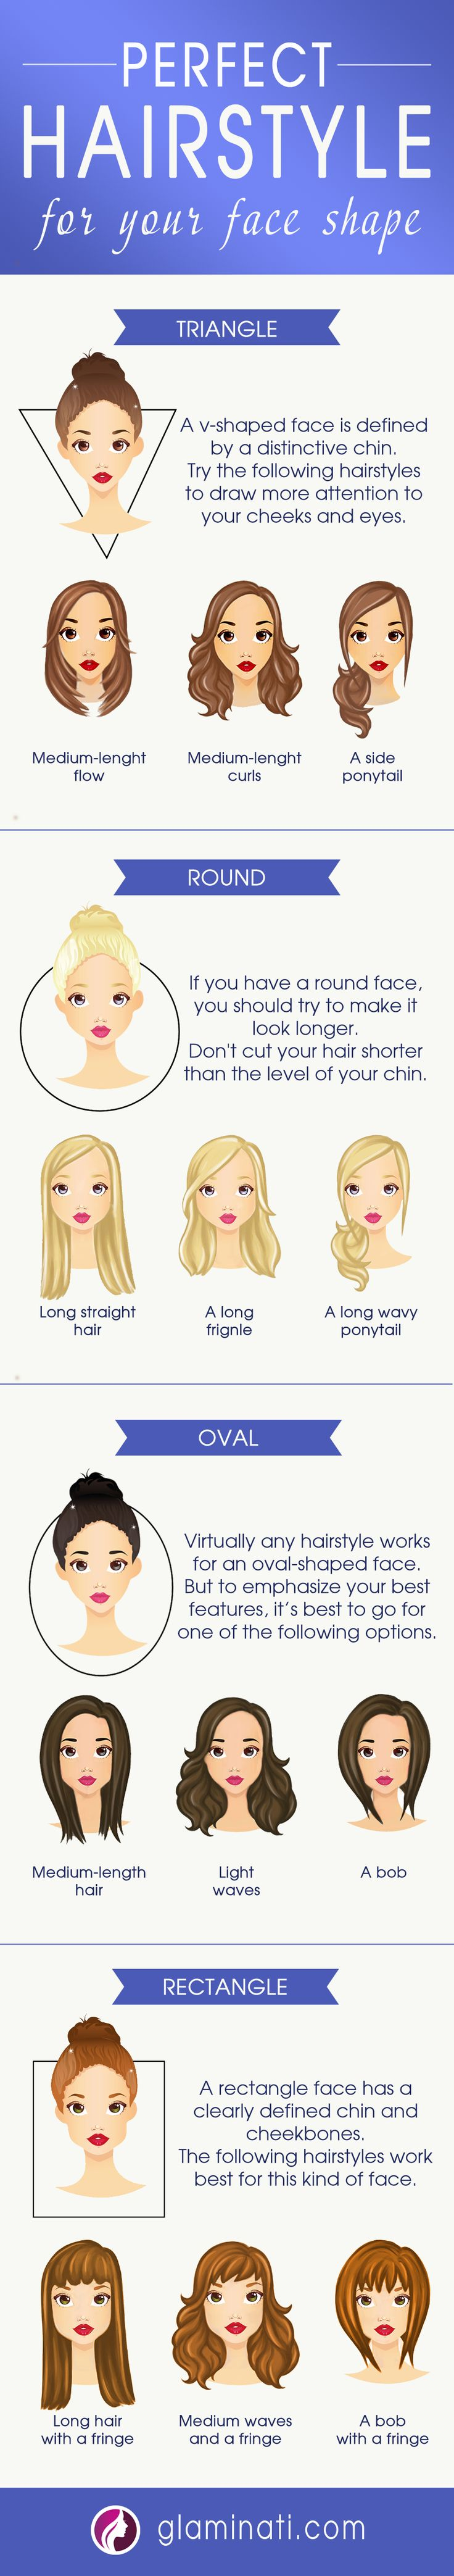 The right medium length hairstyle can easy your styling burden and make your hair look thicker, fuller and more manageable.